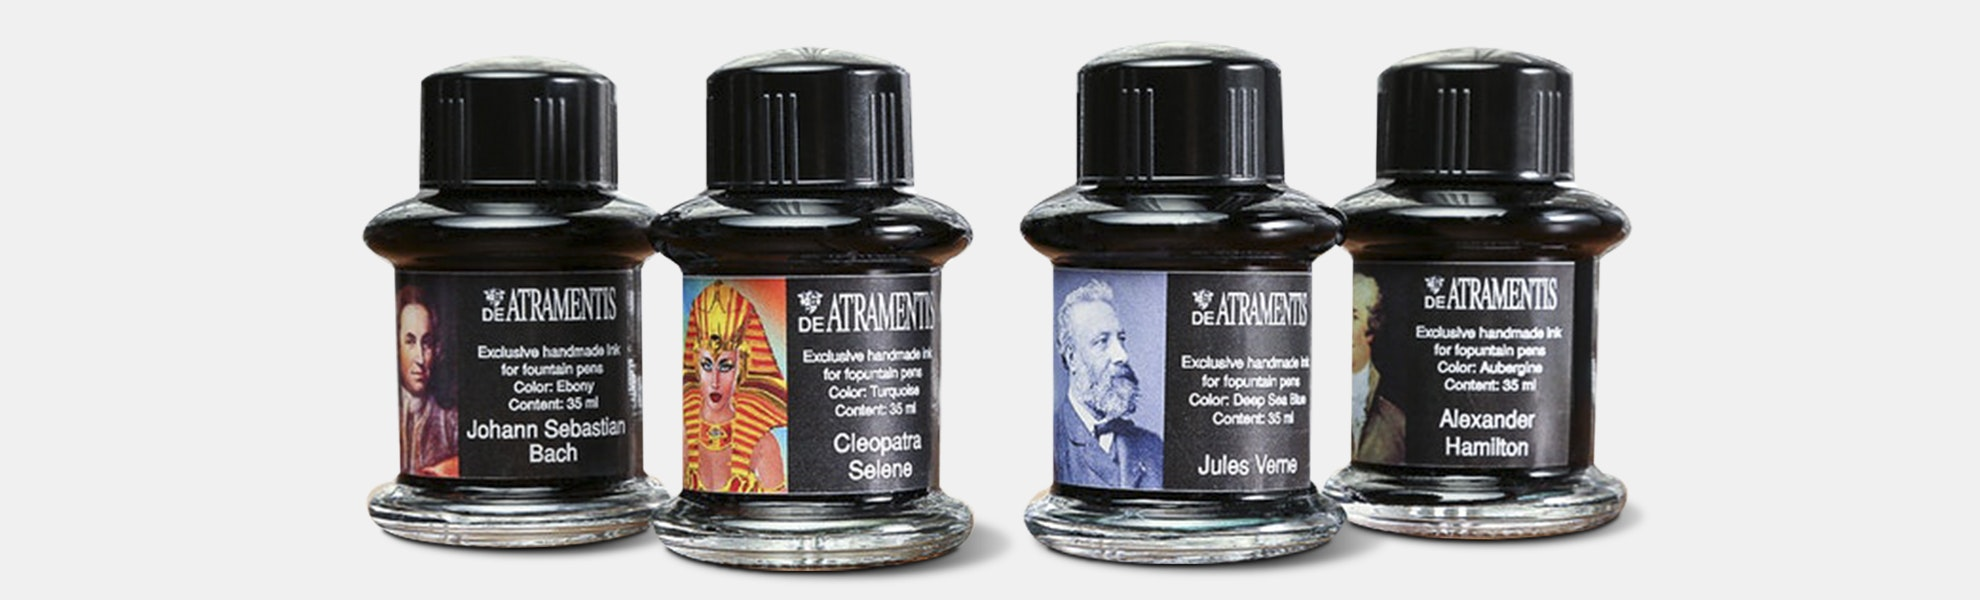 De Atramentis Persons of History Inks (3-Pack)